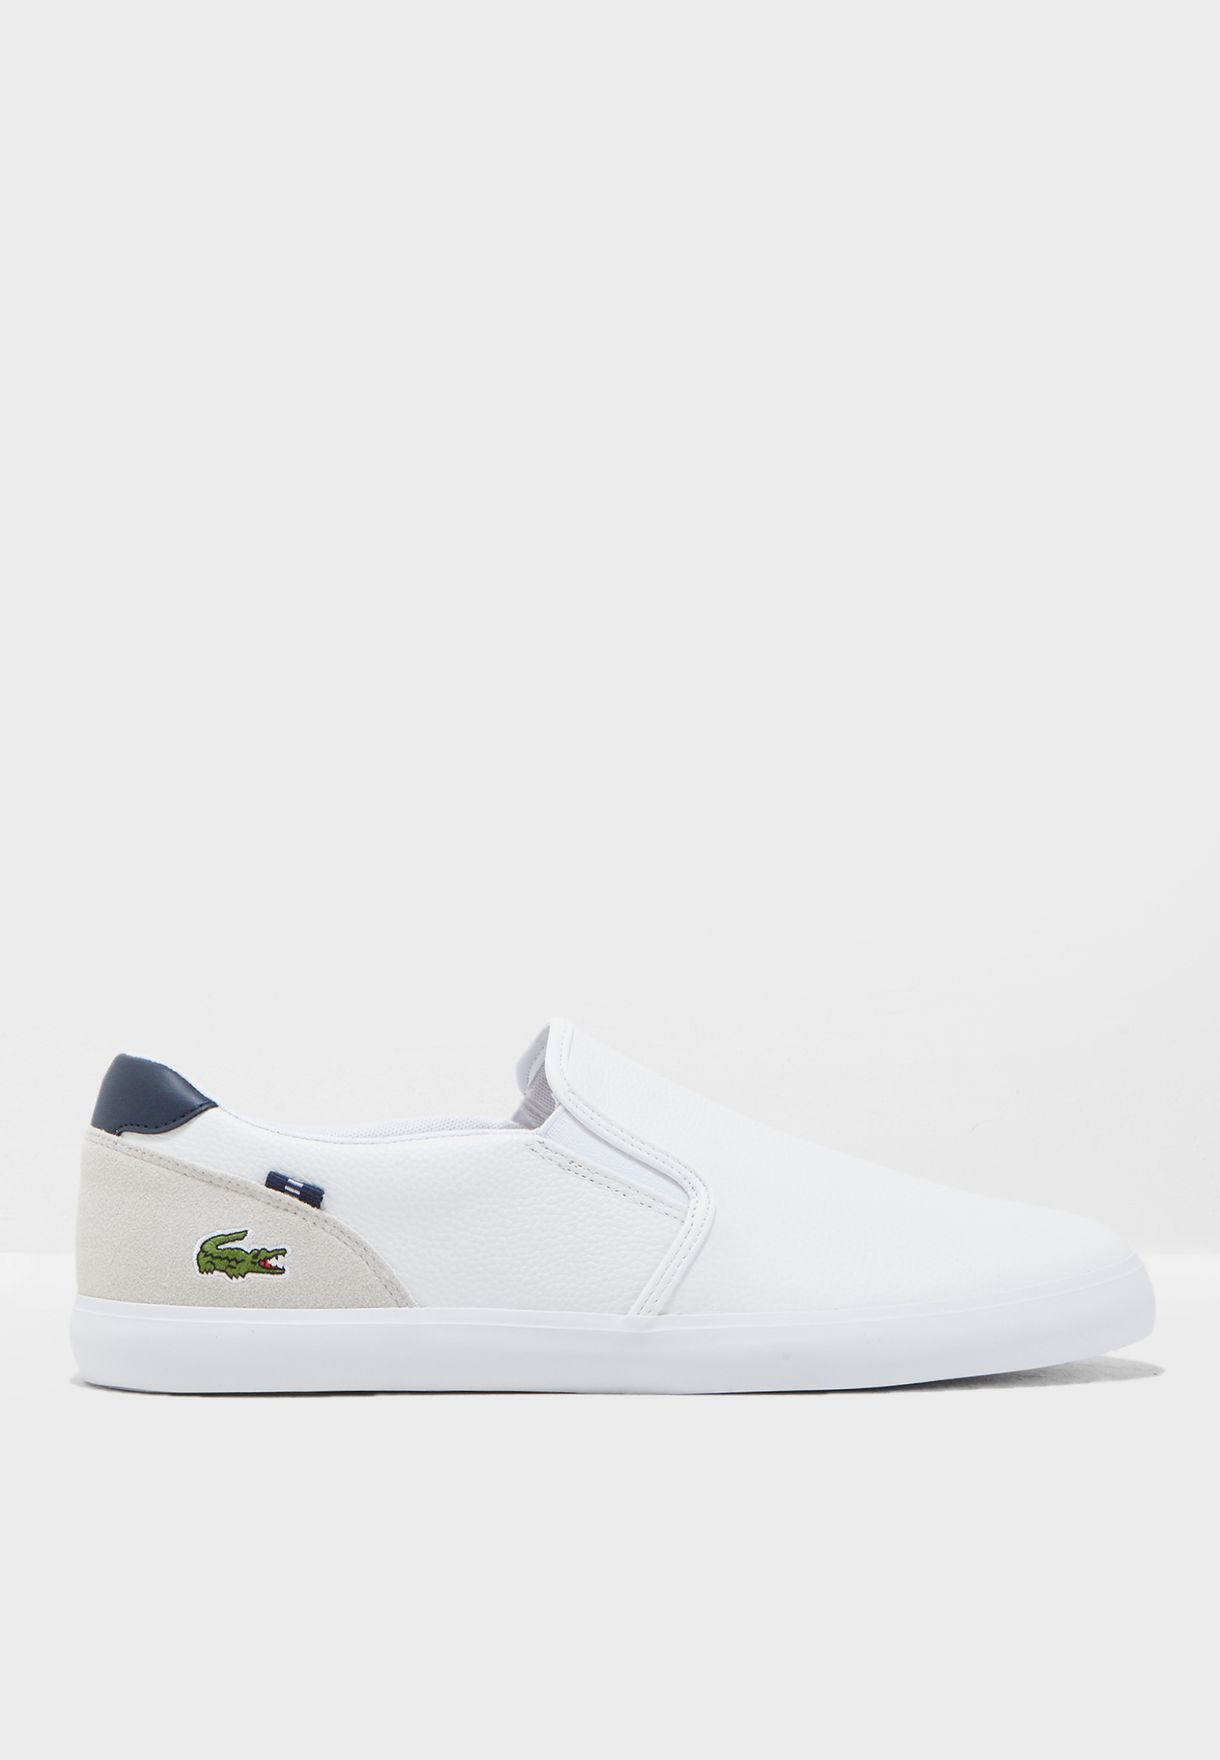 32382c9a70a8 Shop Lacoste white Jouer Slip Ons 36CAM0038042 for Men in UAE ...